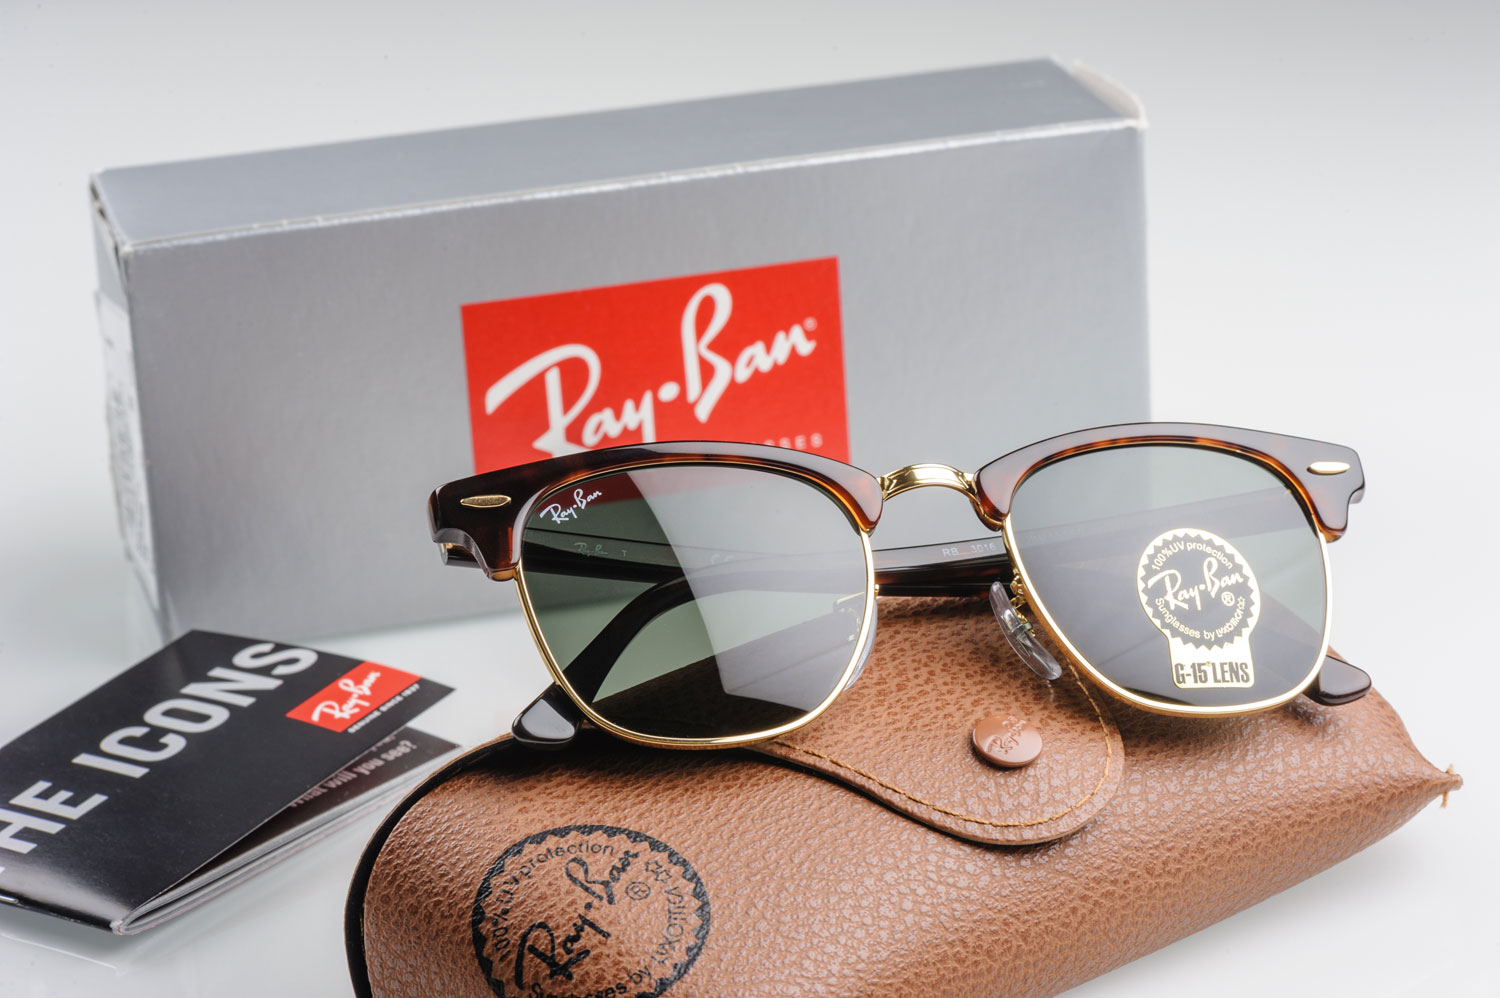 Image of Ray-Ban sunglasses.